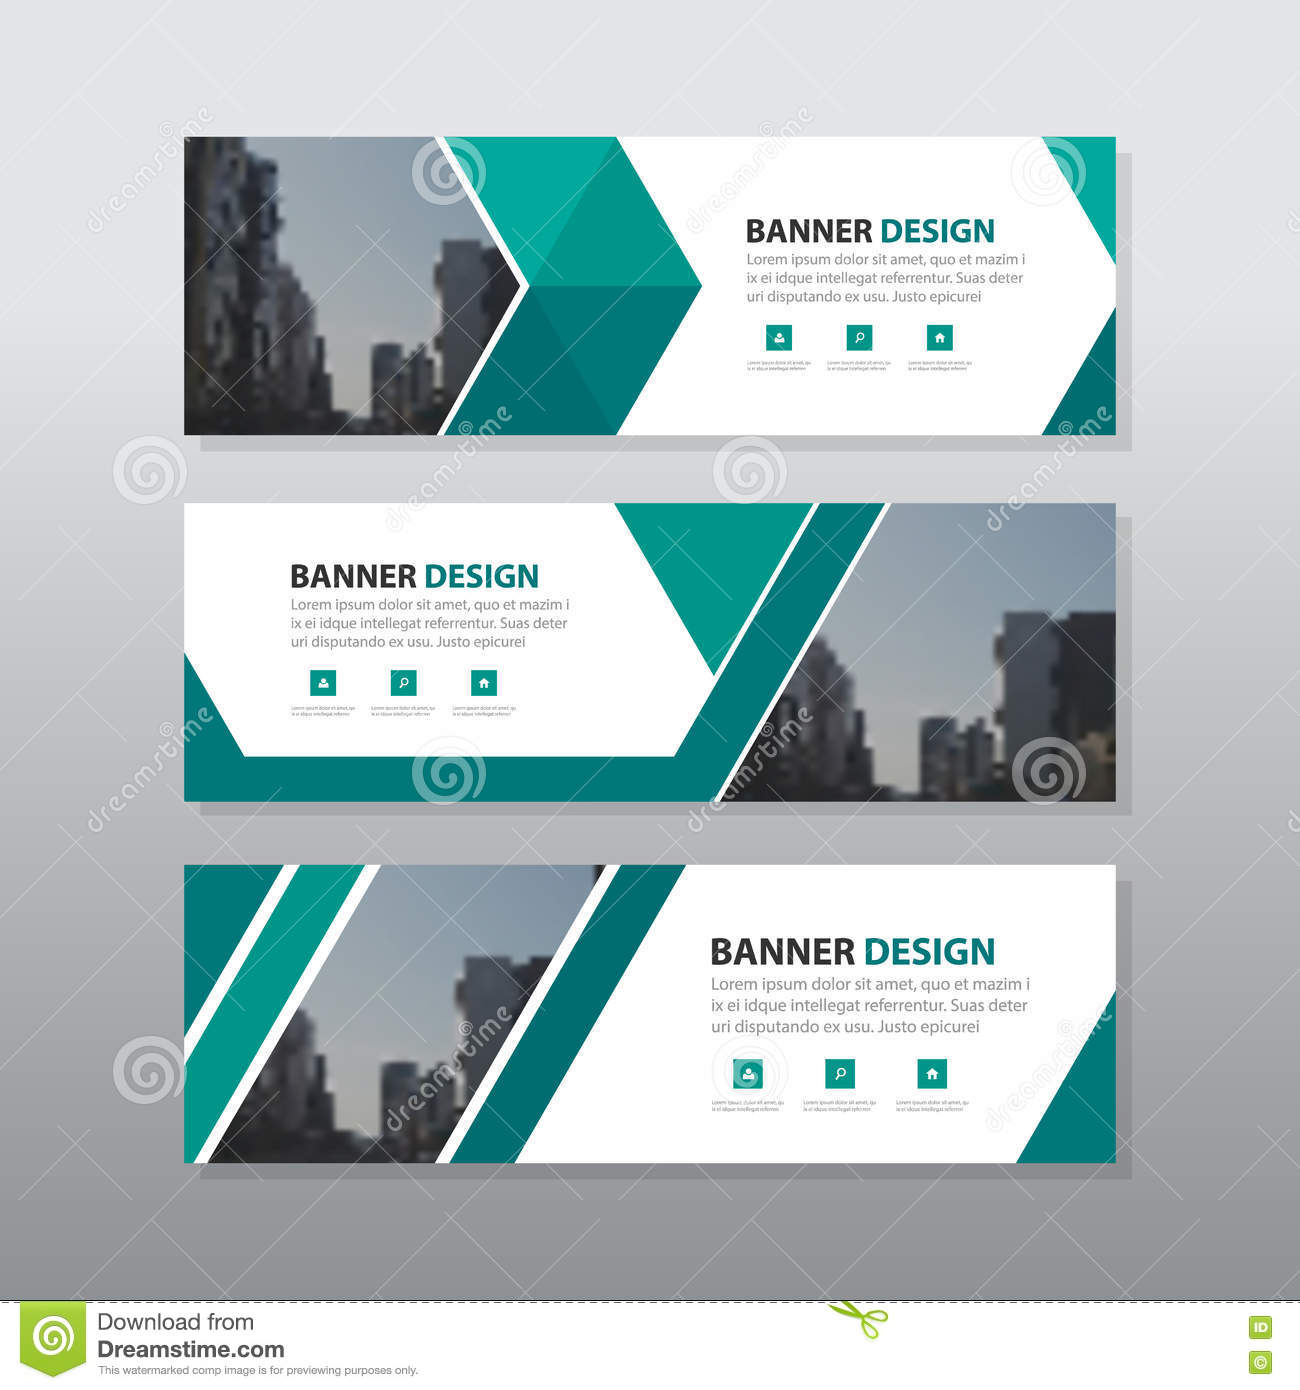 Store Banne Horizontal Green Triangle Abstract Corporate Business Banner Template